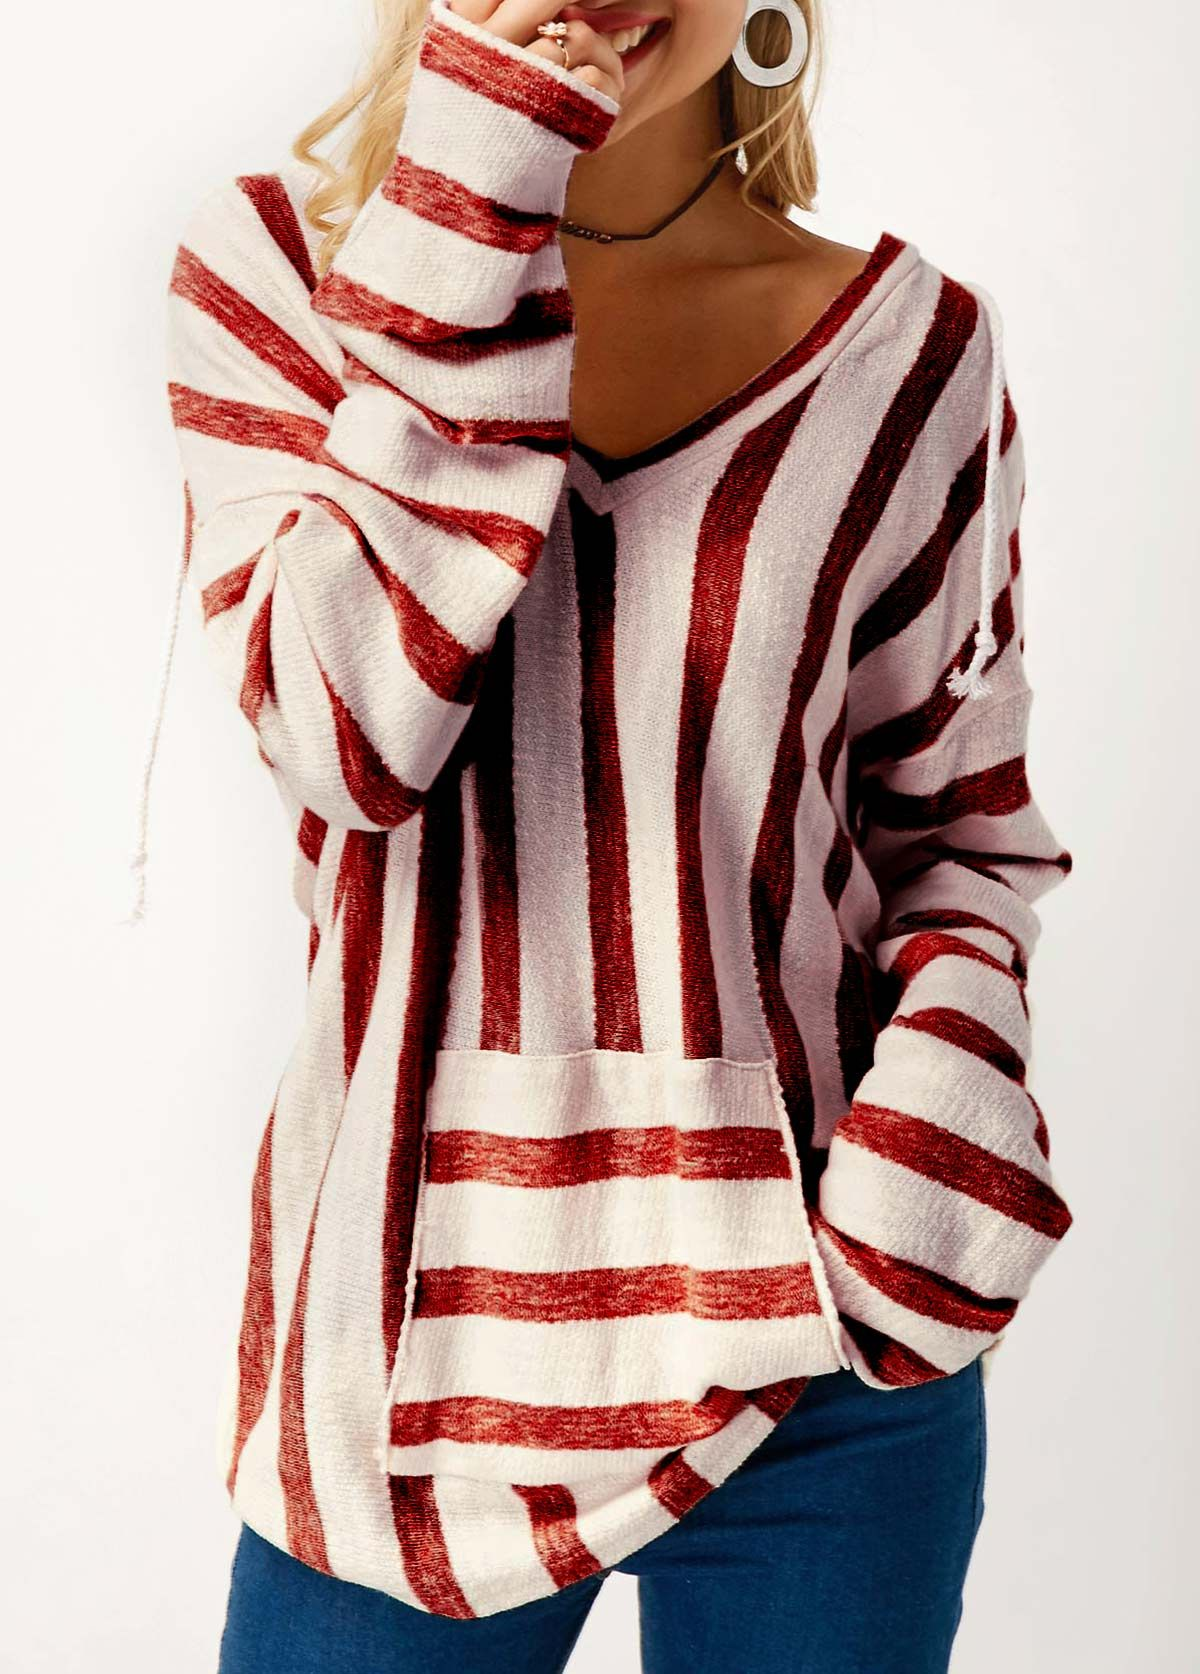 Wine Red Hooded Collar Pocket Striped Sweater | Clothes, Clothing ...